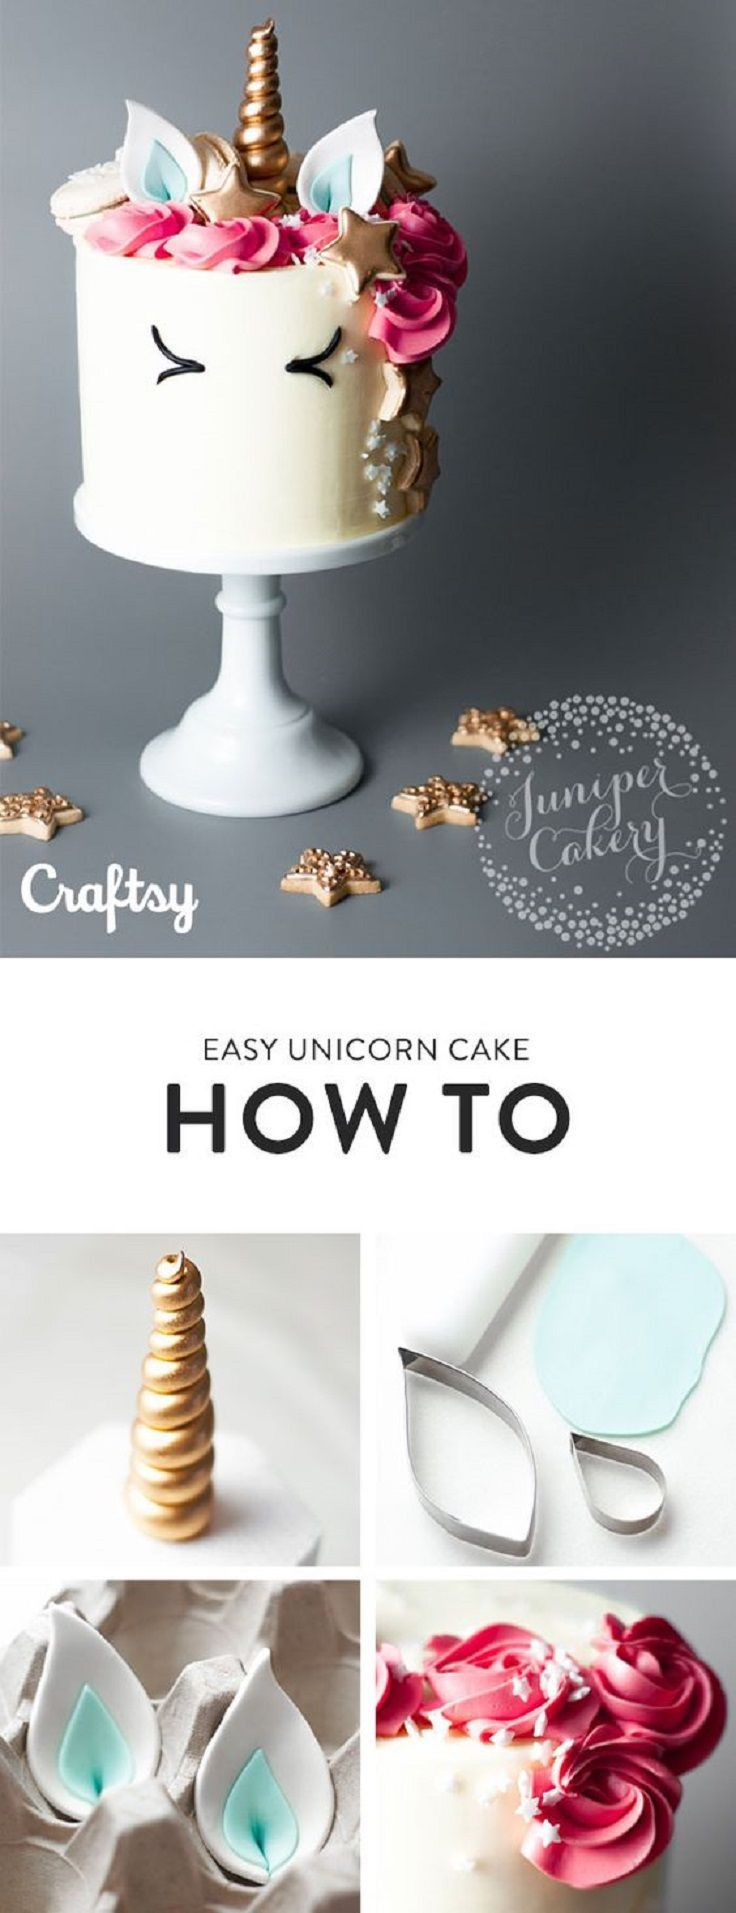 How to Make a Unicorn Cake - An Enchantingly Easy Tutorial - 15 Spring-Inspired Cake Decorating Tips and Tutorials (Rainbow Cake Decorating)